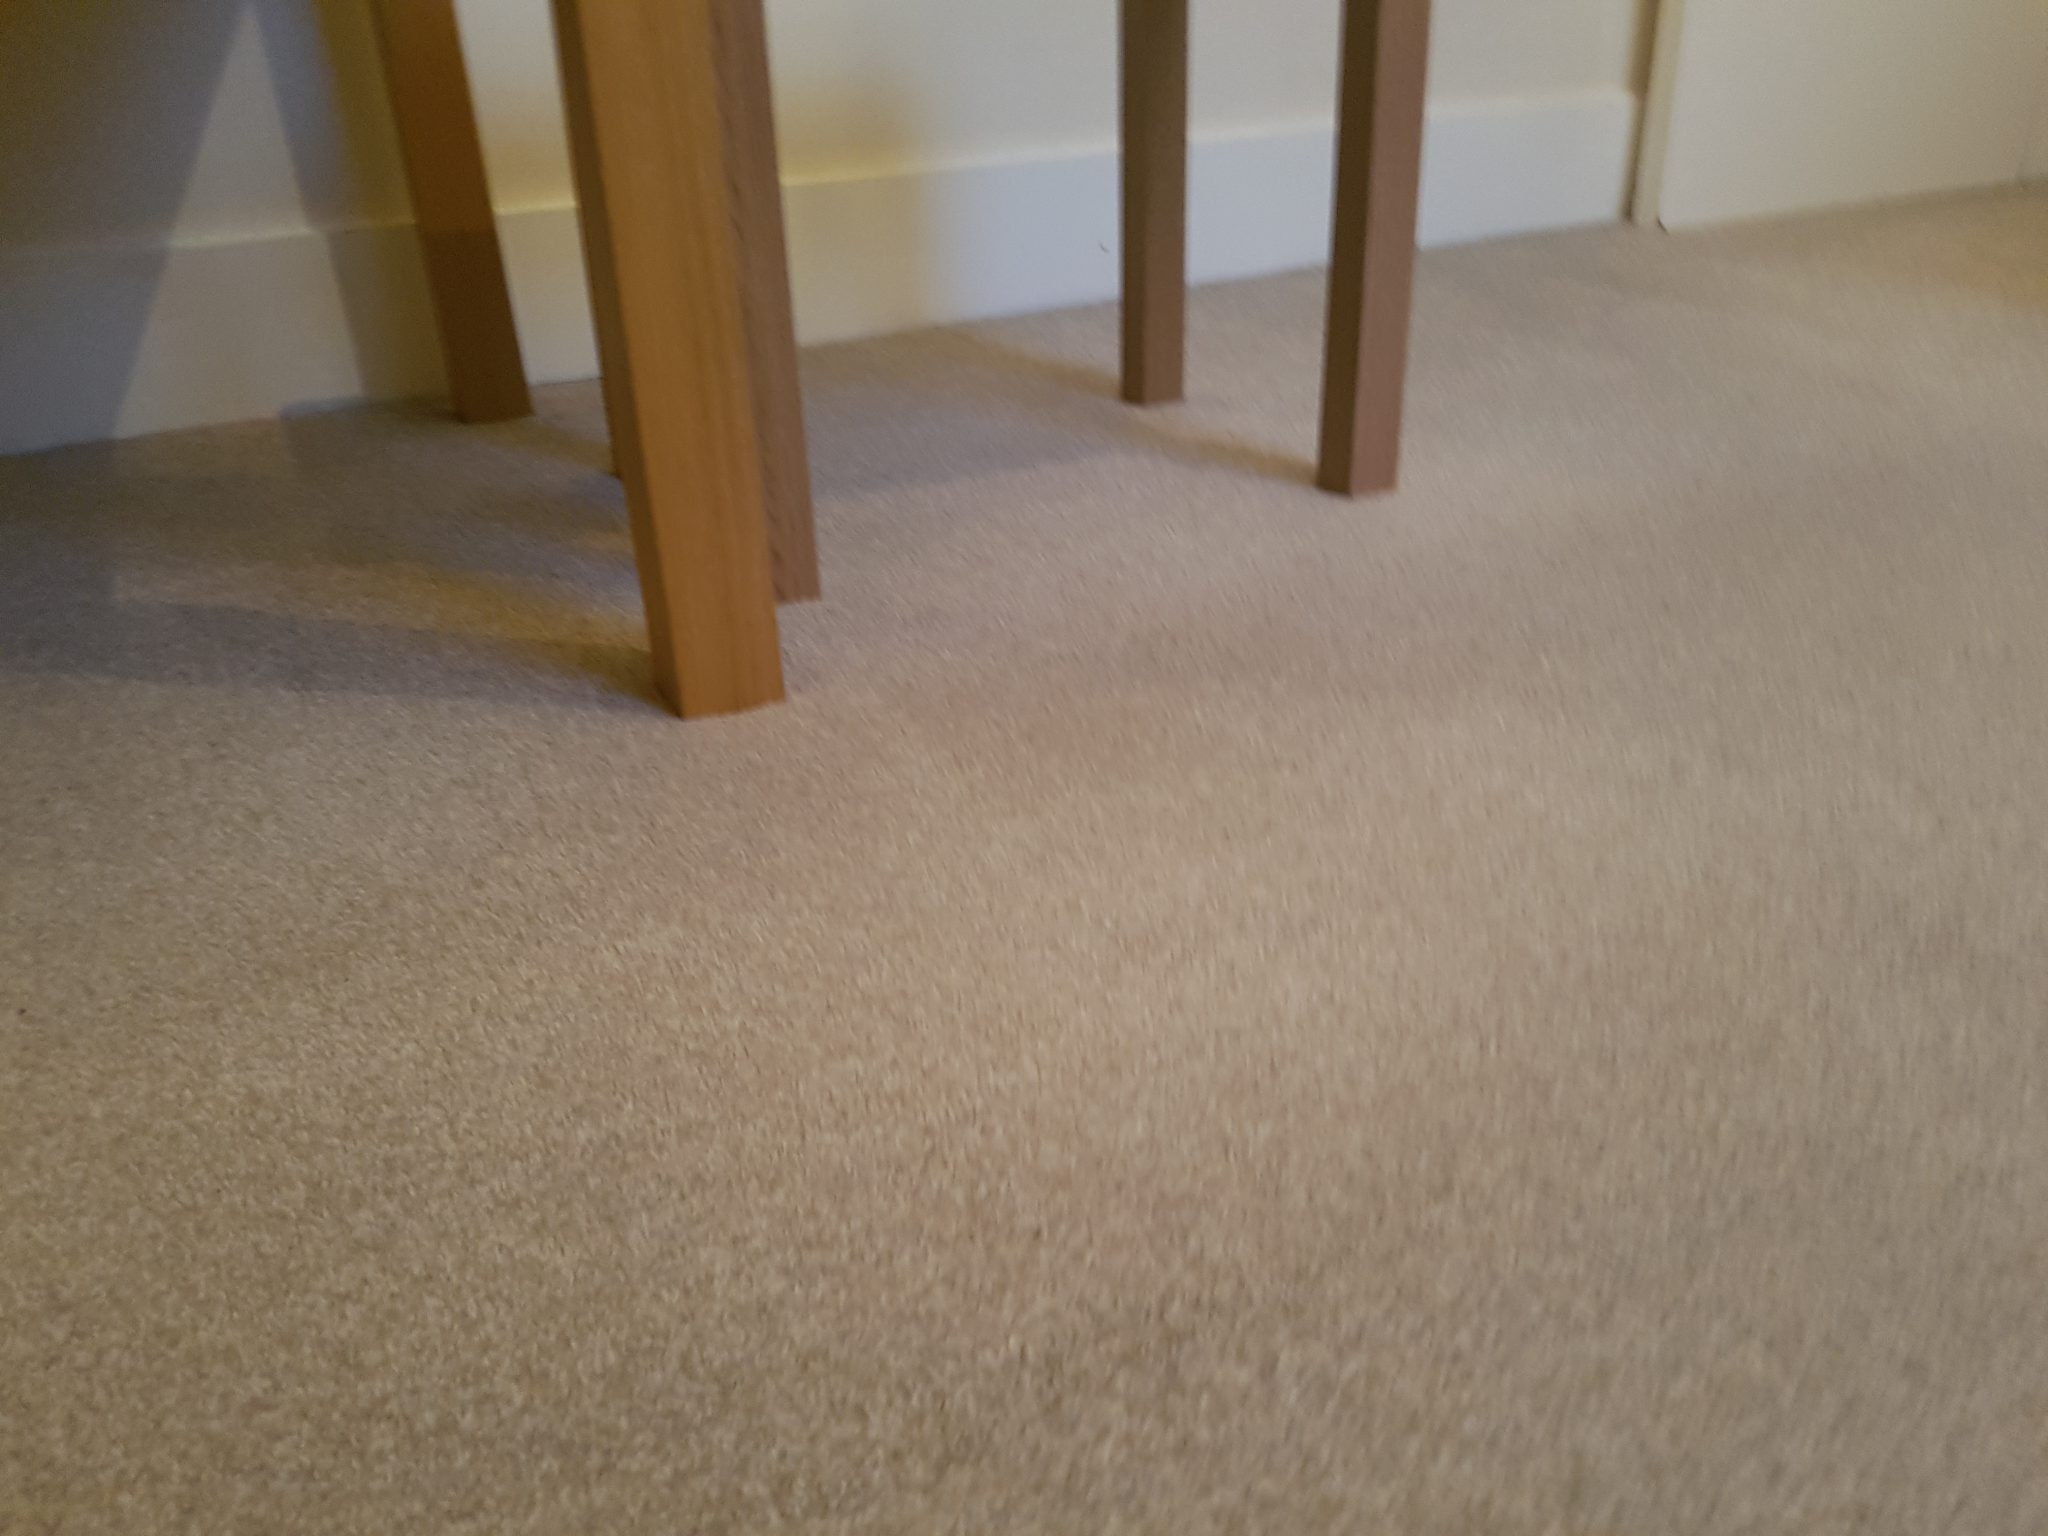 Carpet Cleaning In New Addington Cr0 Postcode Area